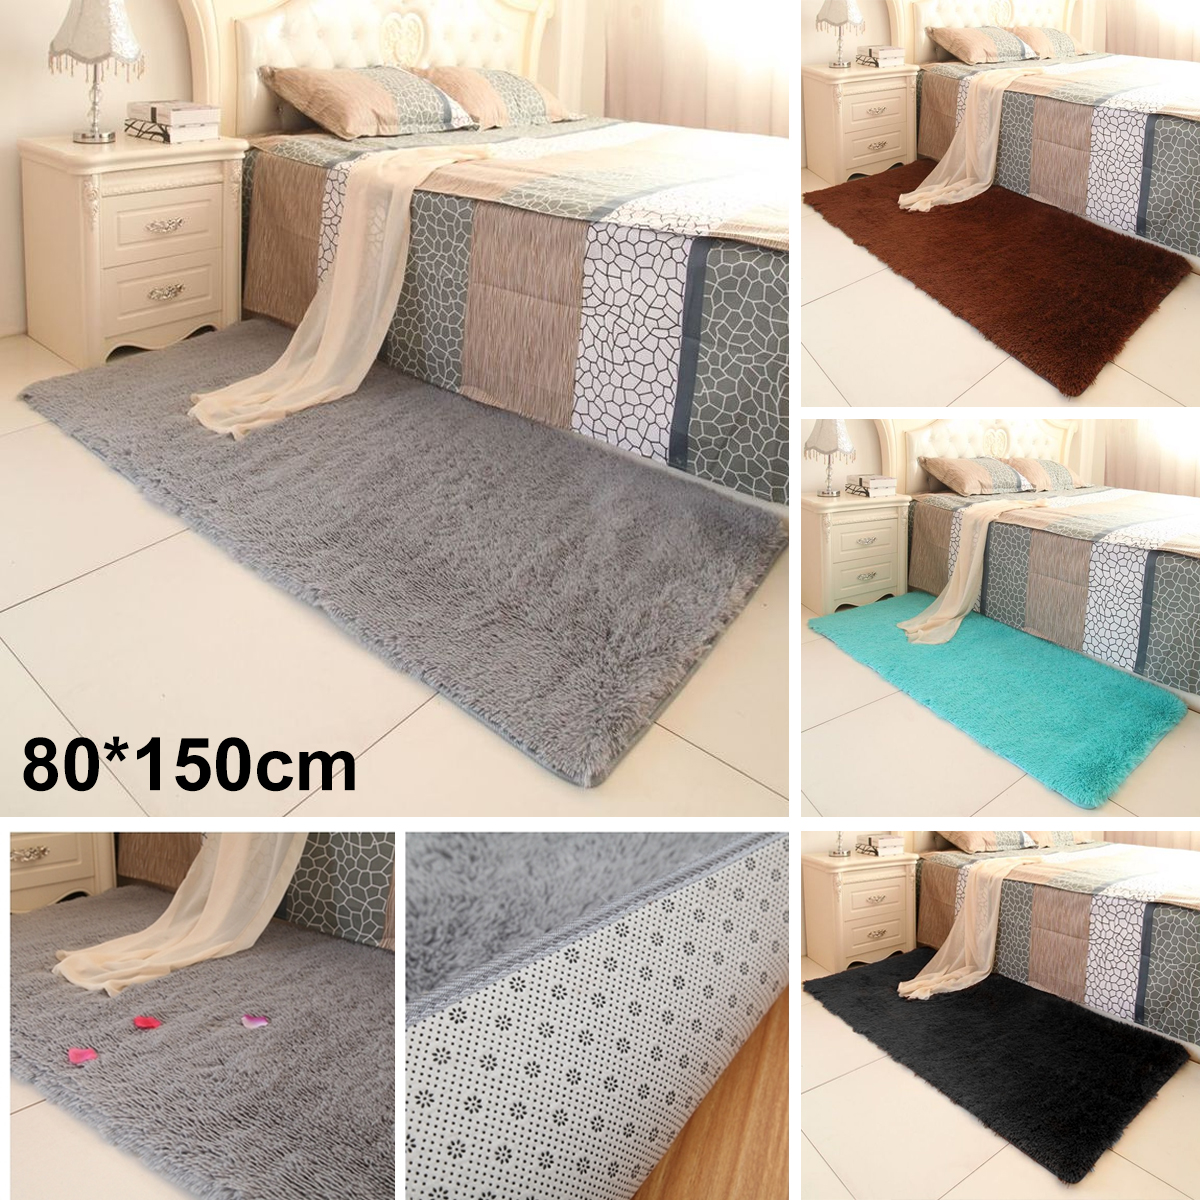 Shaggy Fluffy Rugs Anti Skid Area Rug Dining Room Carpet Dust Cleaning Home  Bedroom Floor